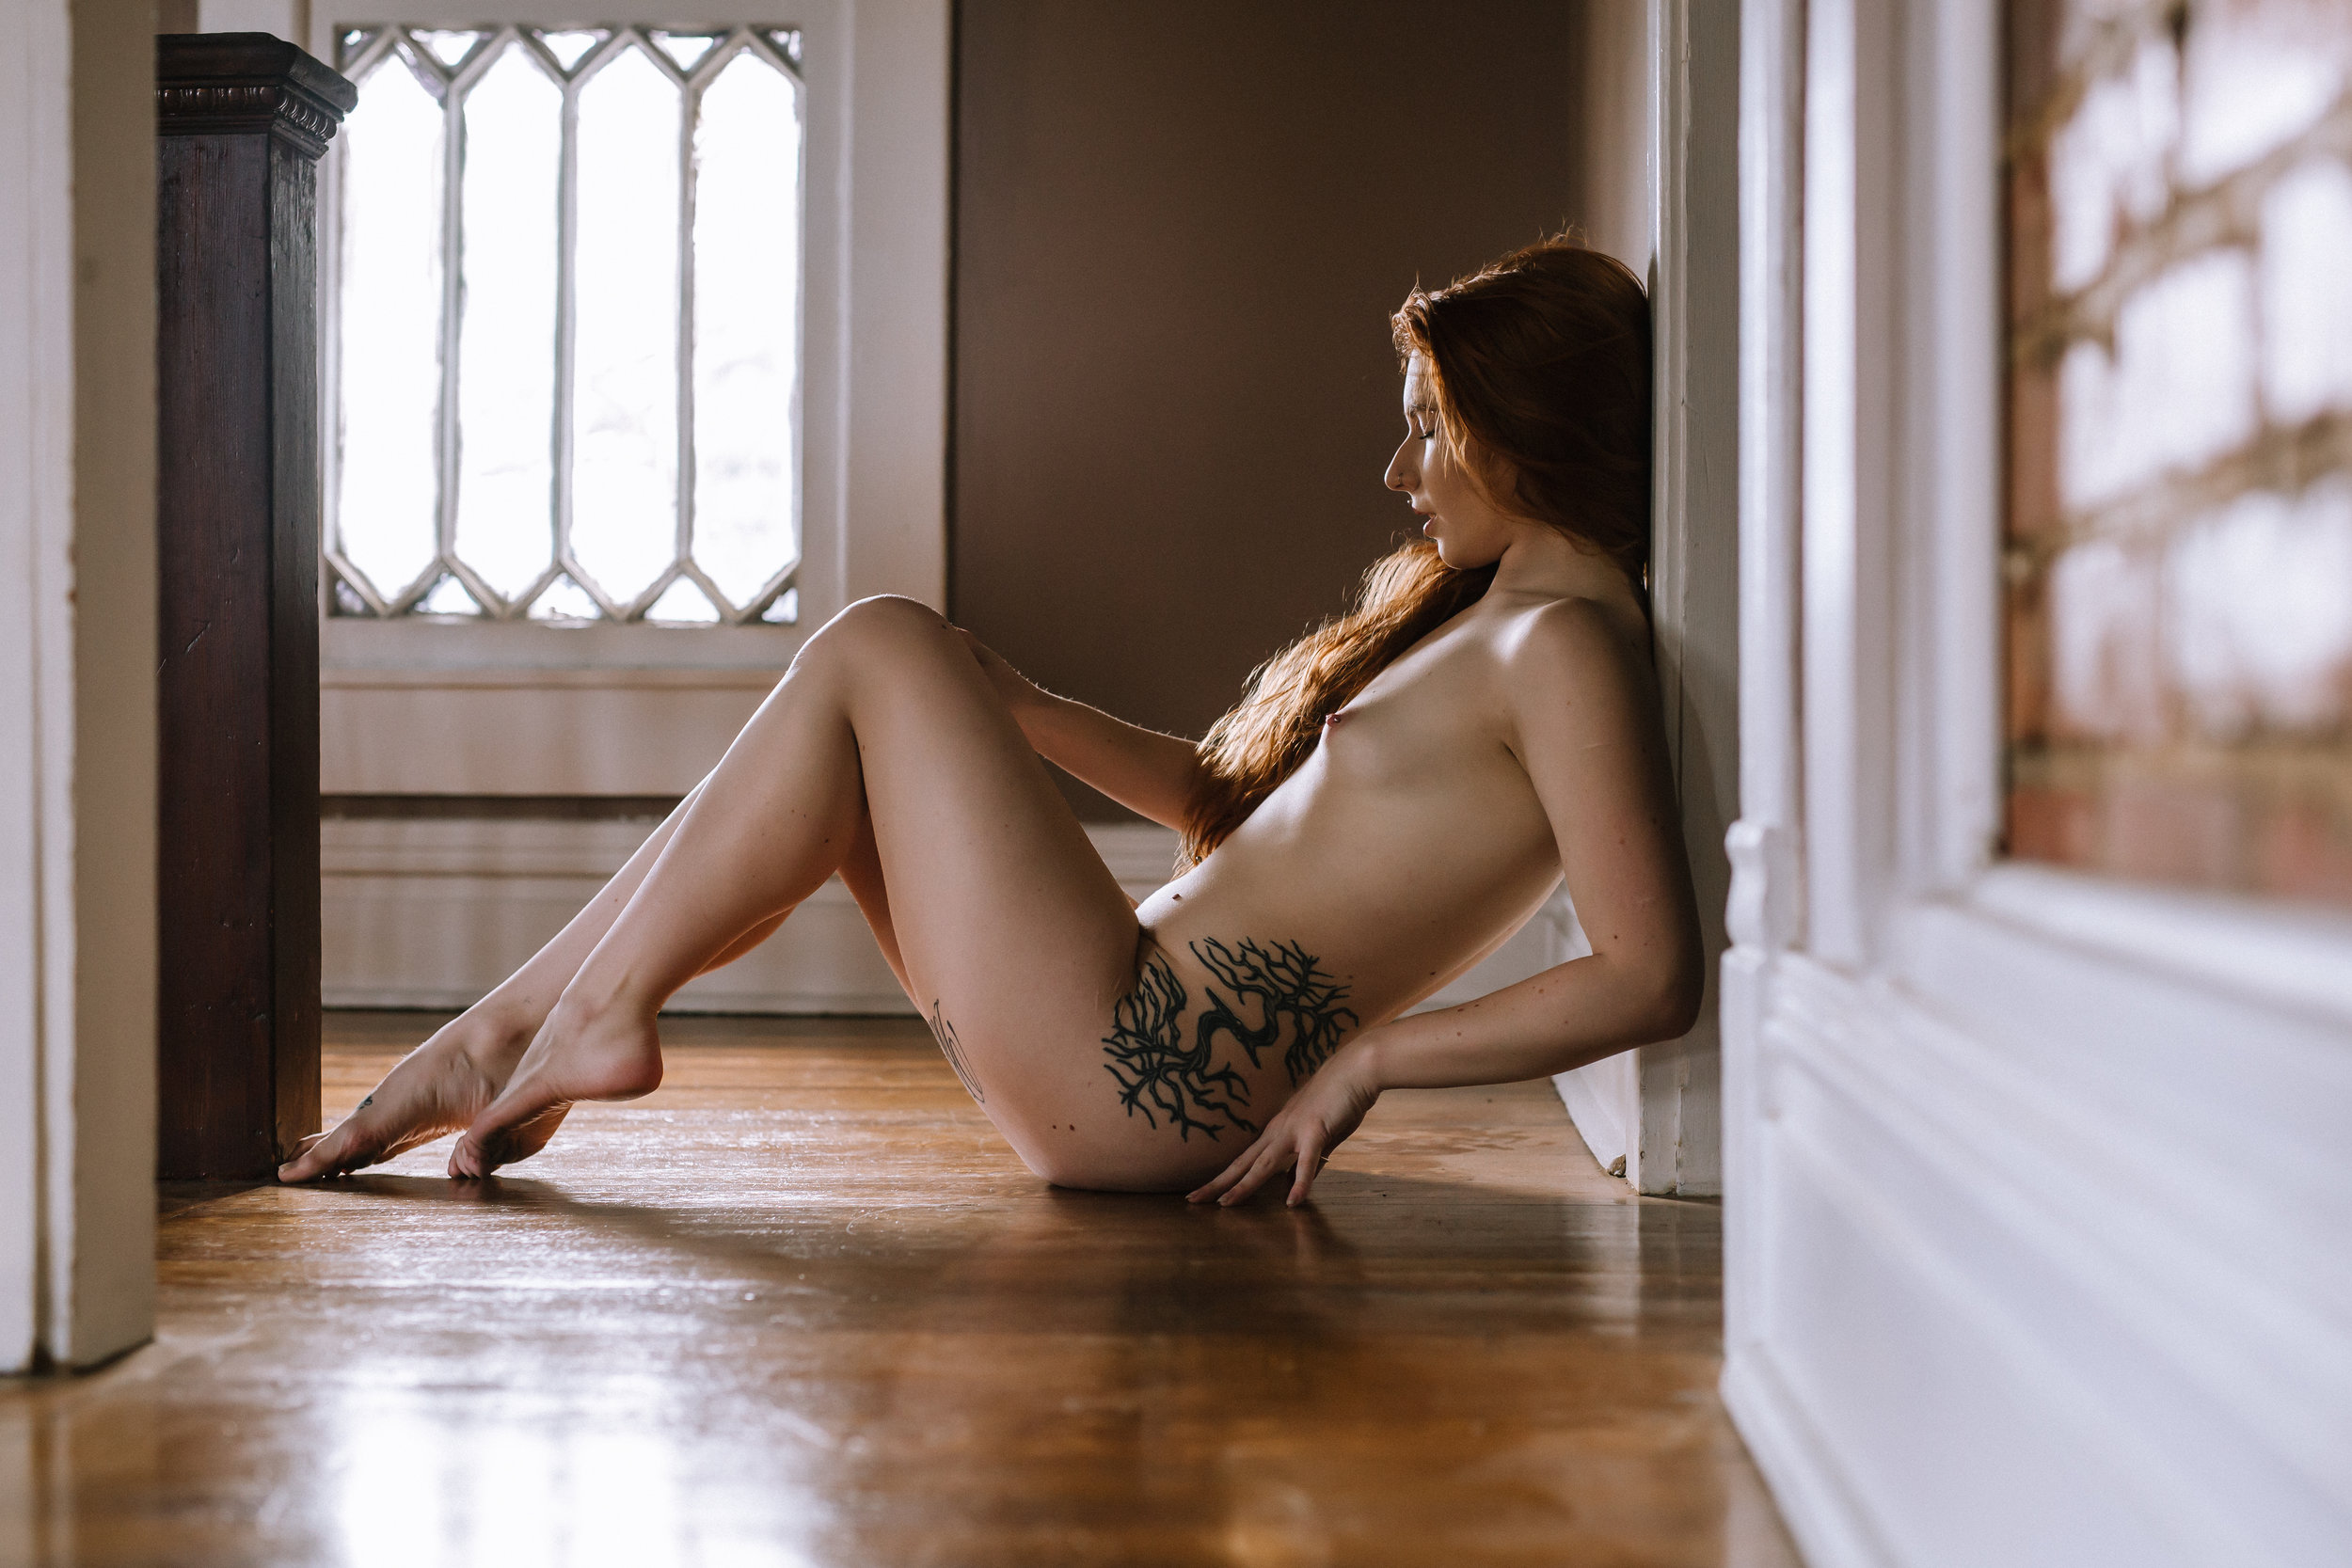 Lilith in Chattanooga - NaturallyBoudoir - April 1 2018-4660.jpg